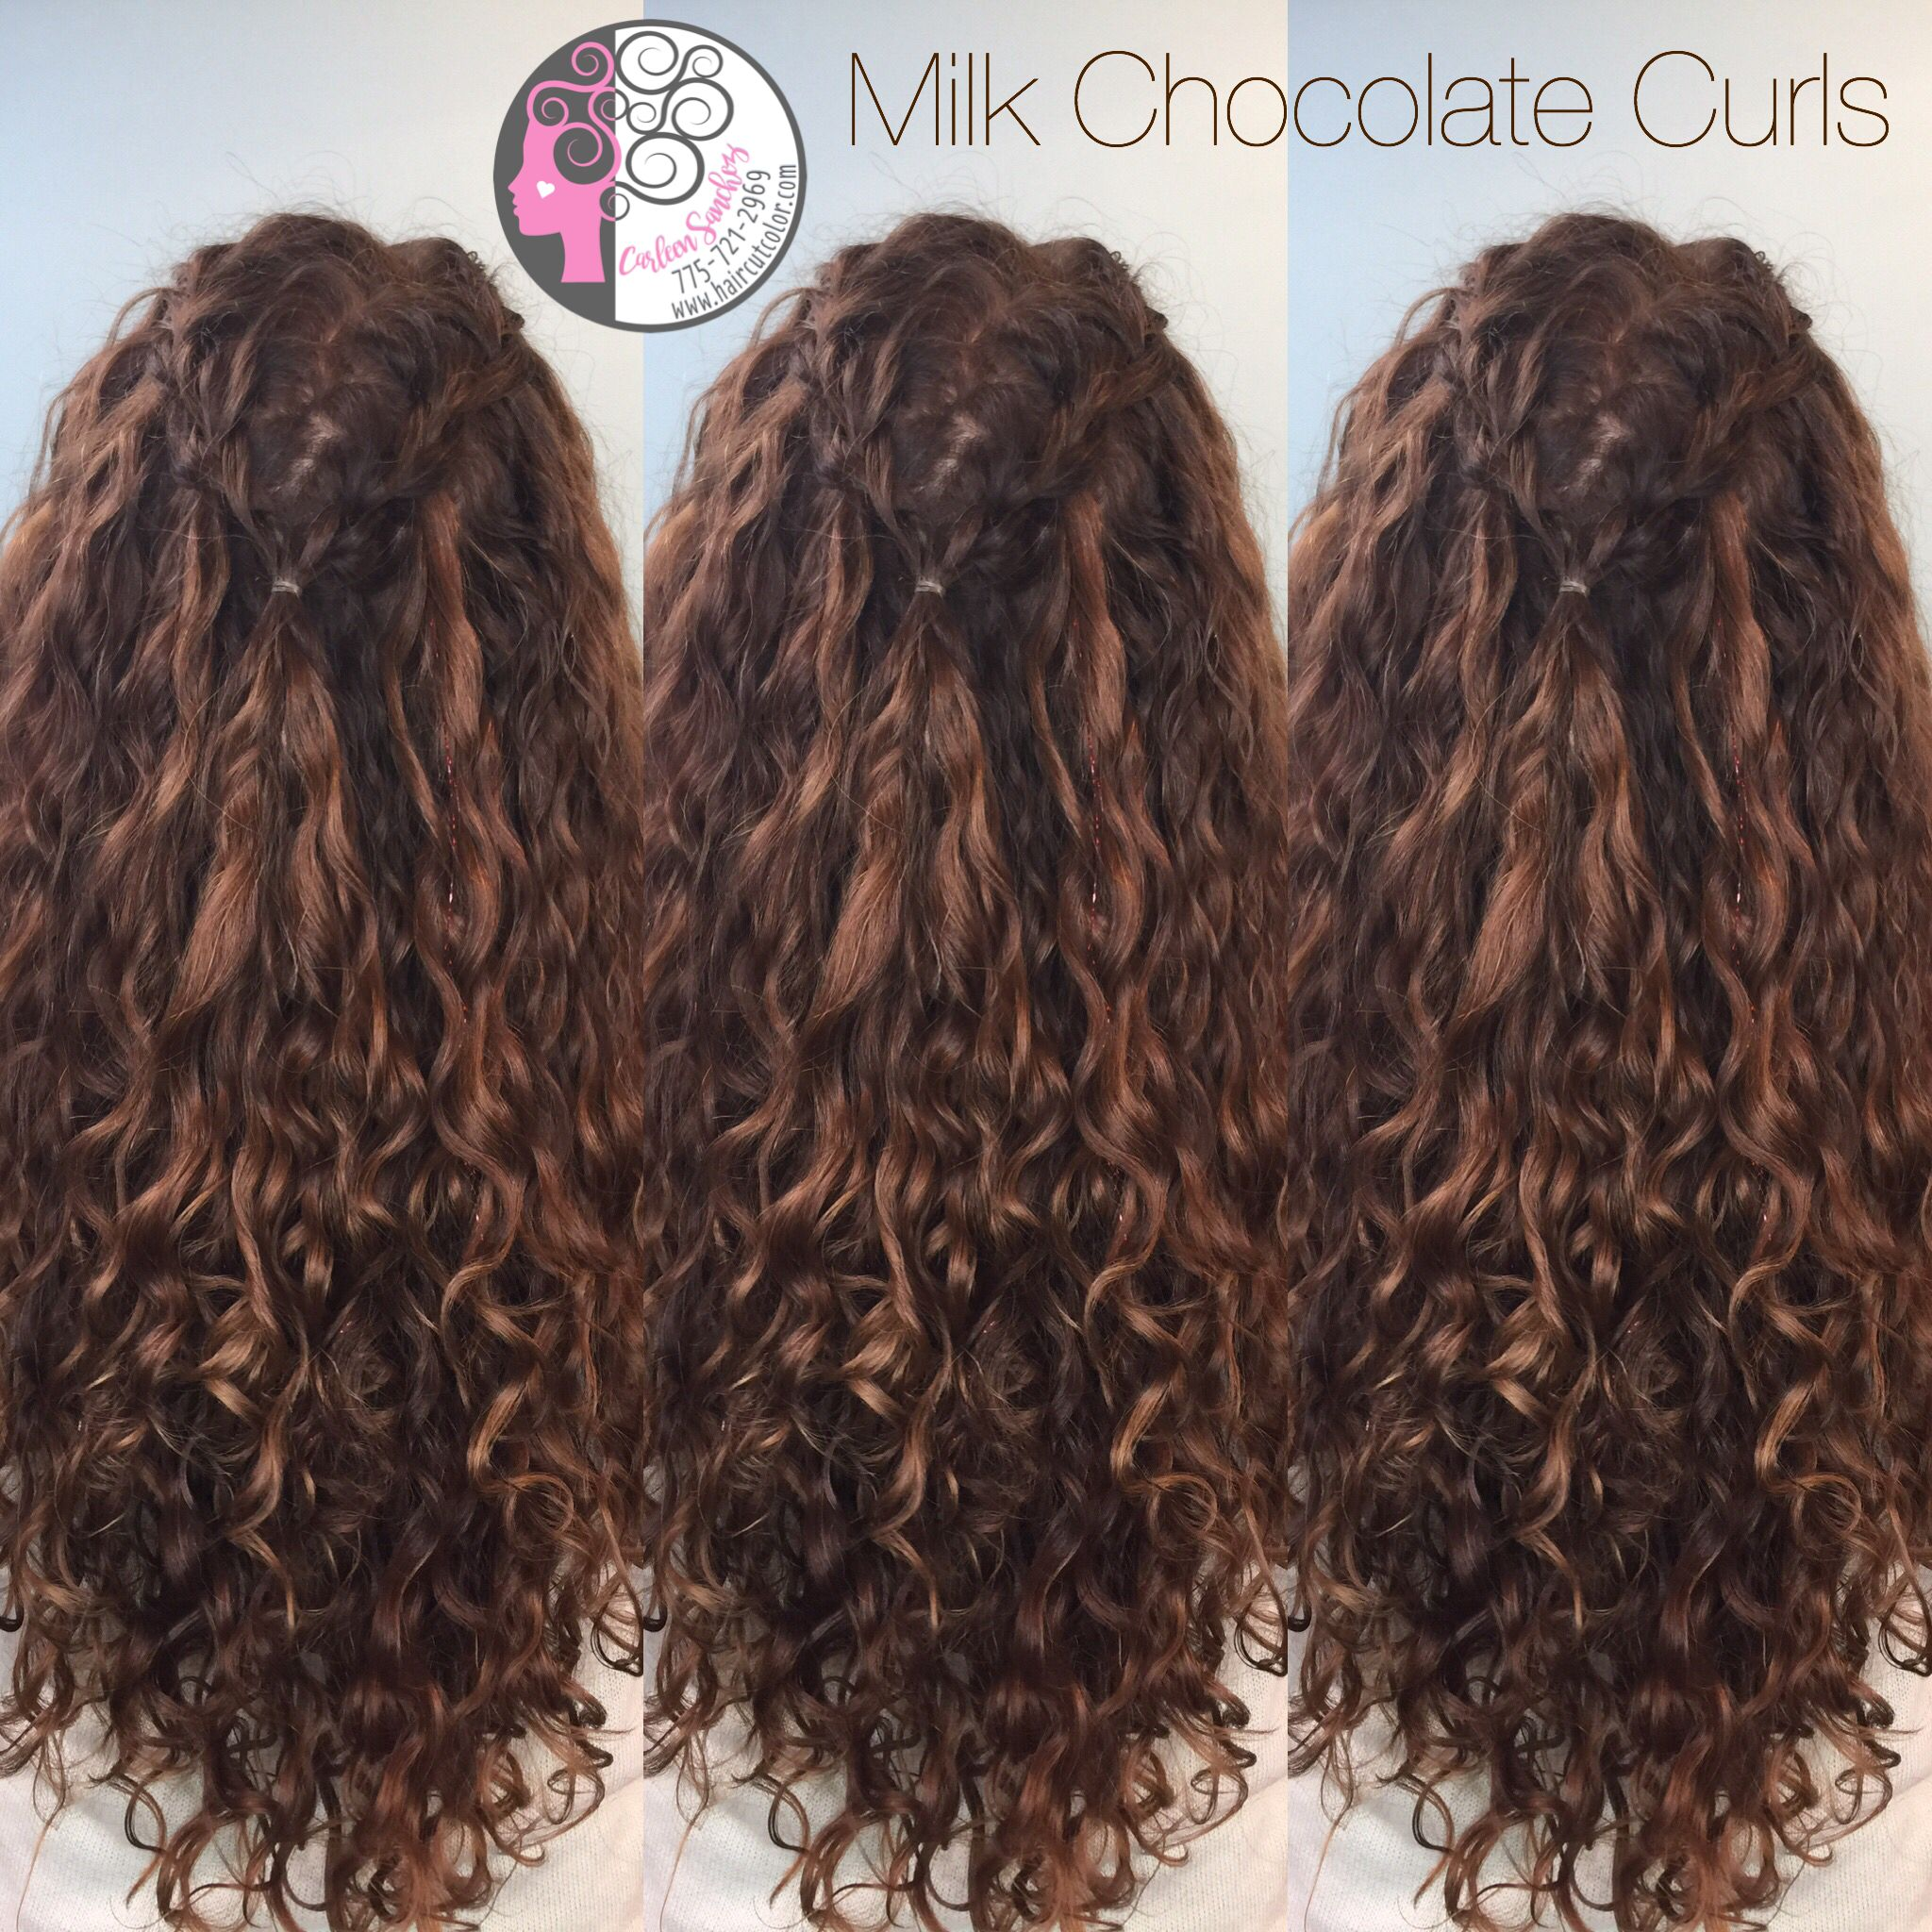 Chocolate Balayage On Naturally Curly Hair By Carleen Sanchez